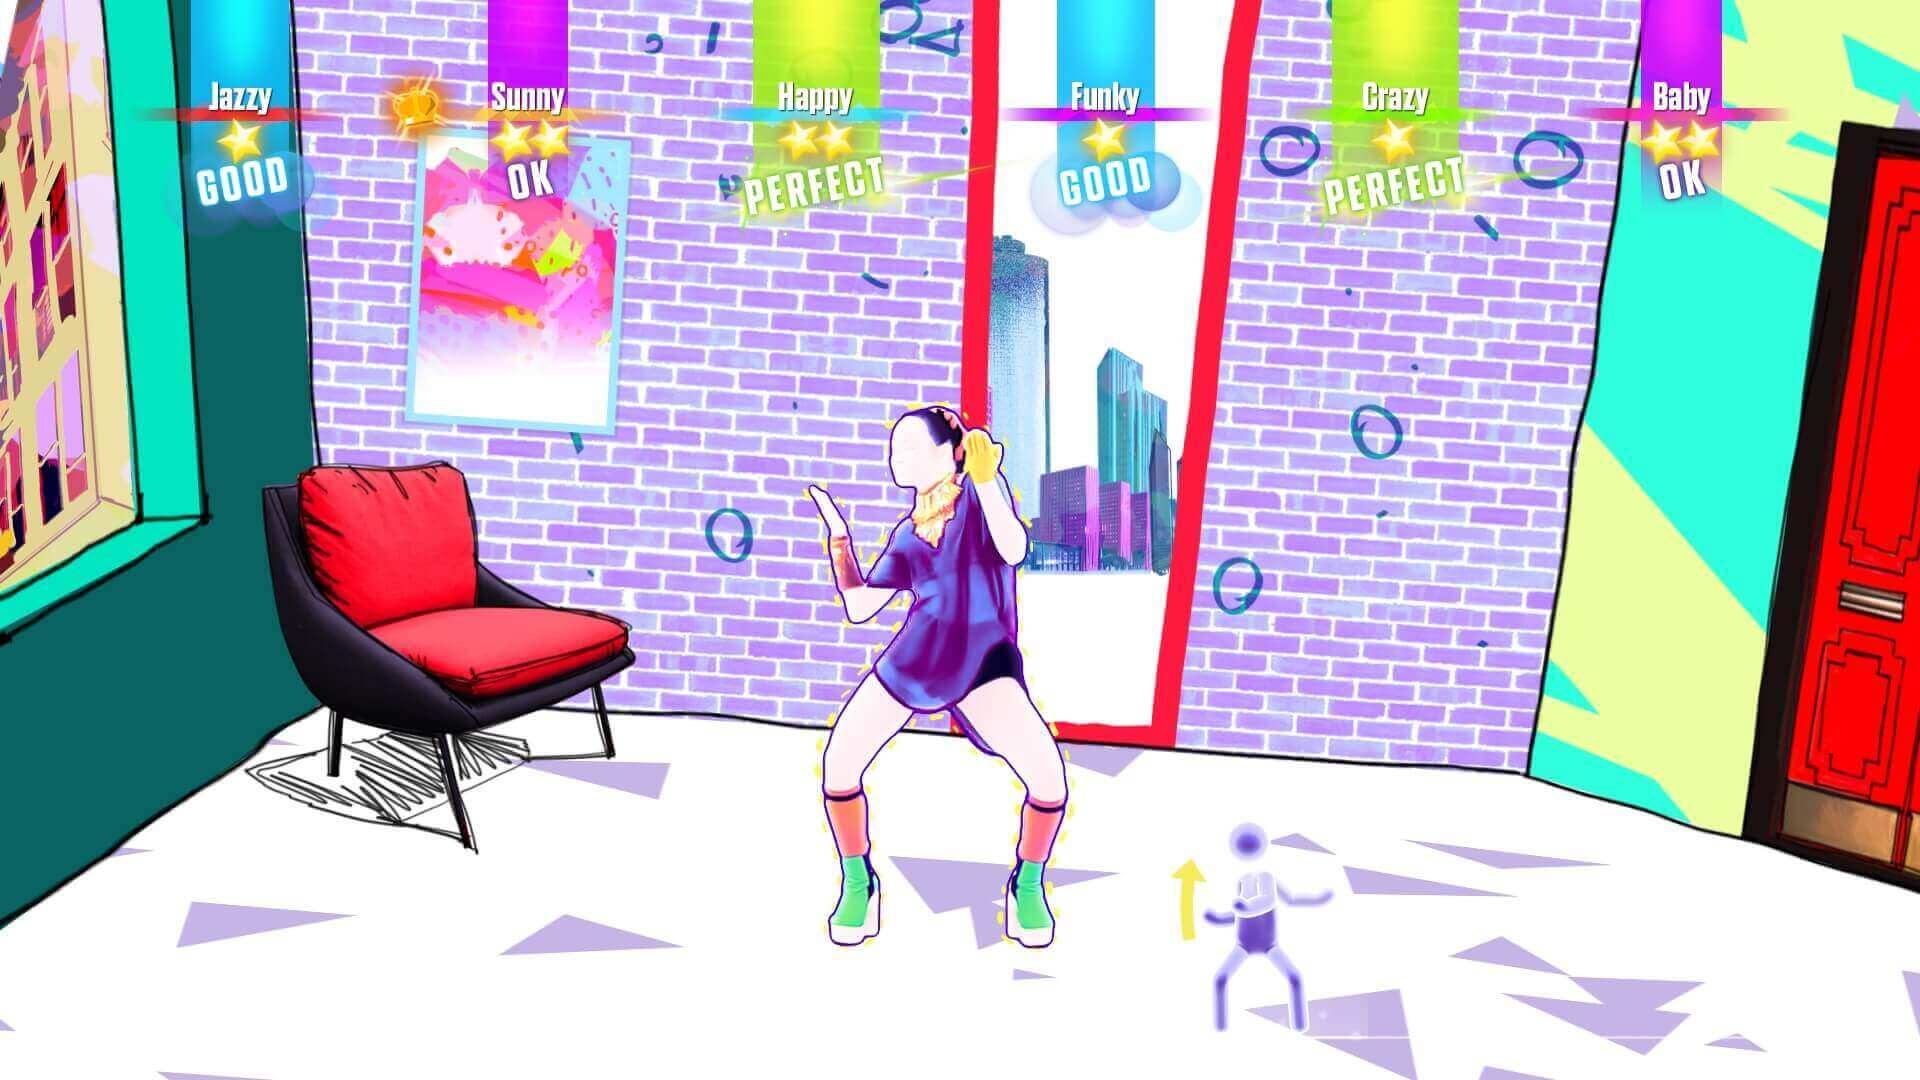 Just Dance 2017 download free